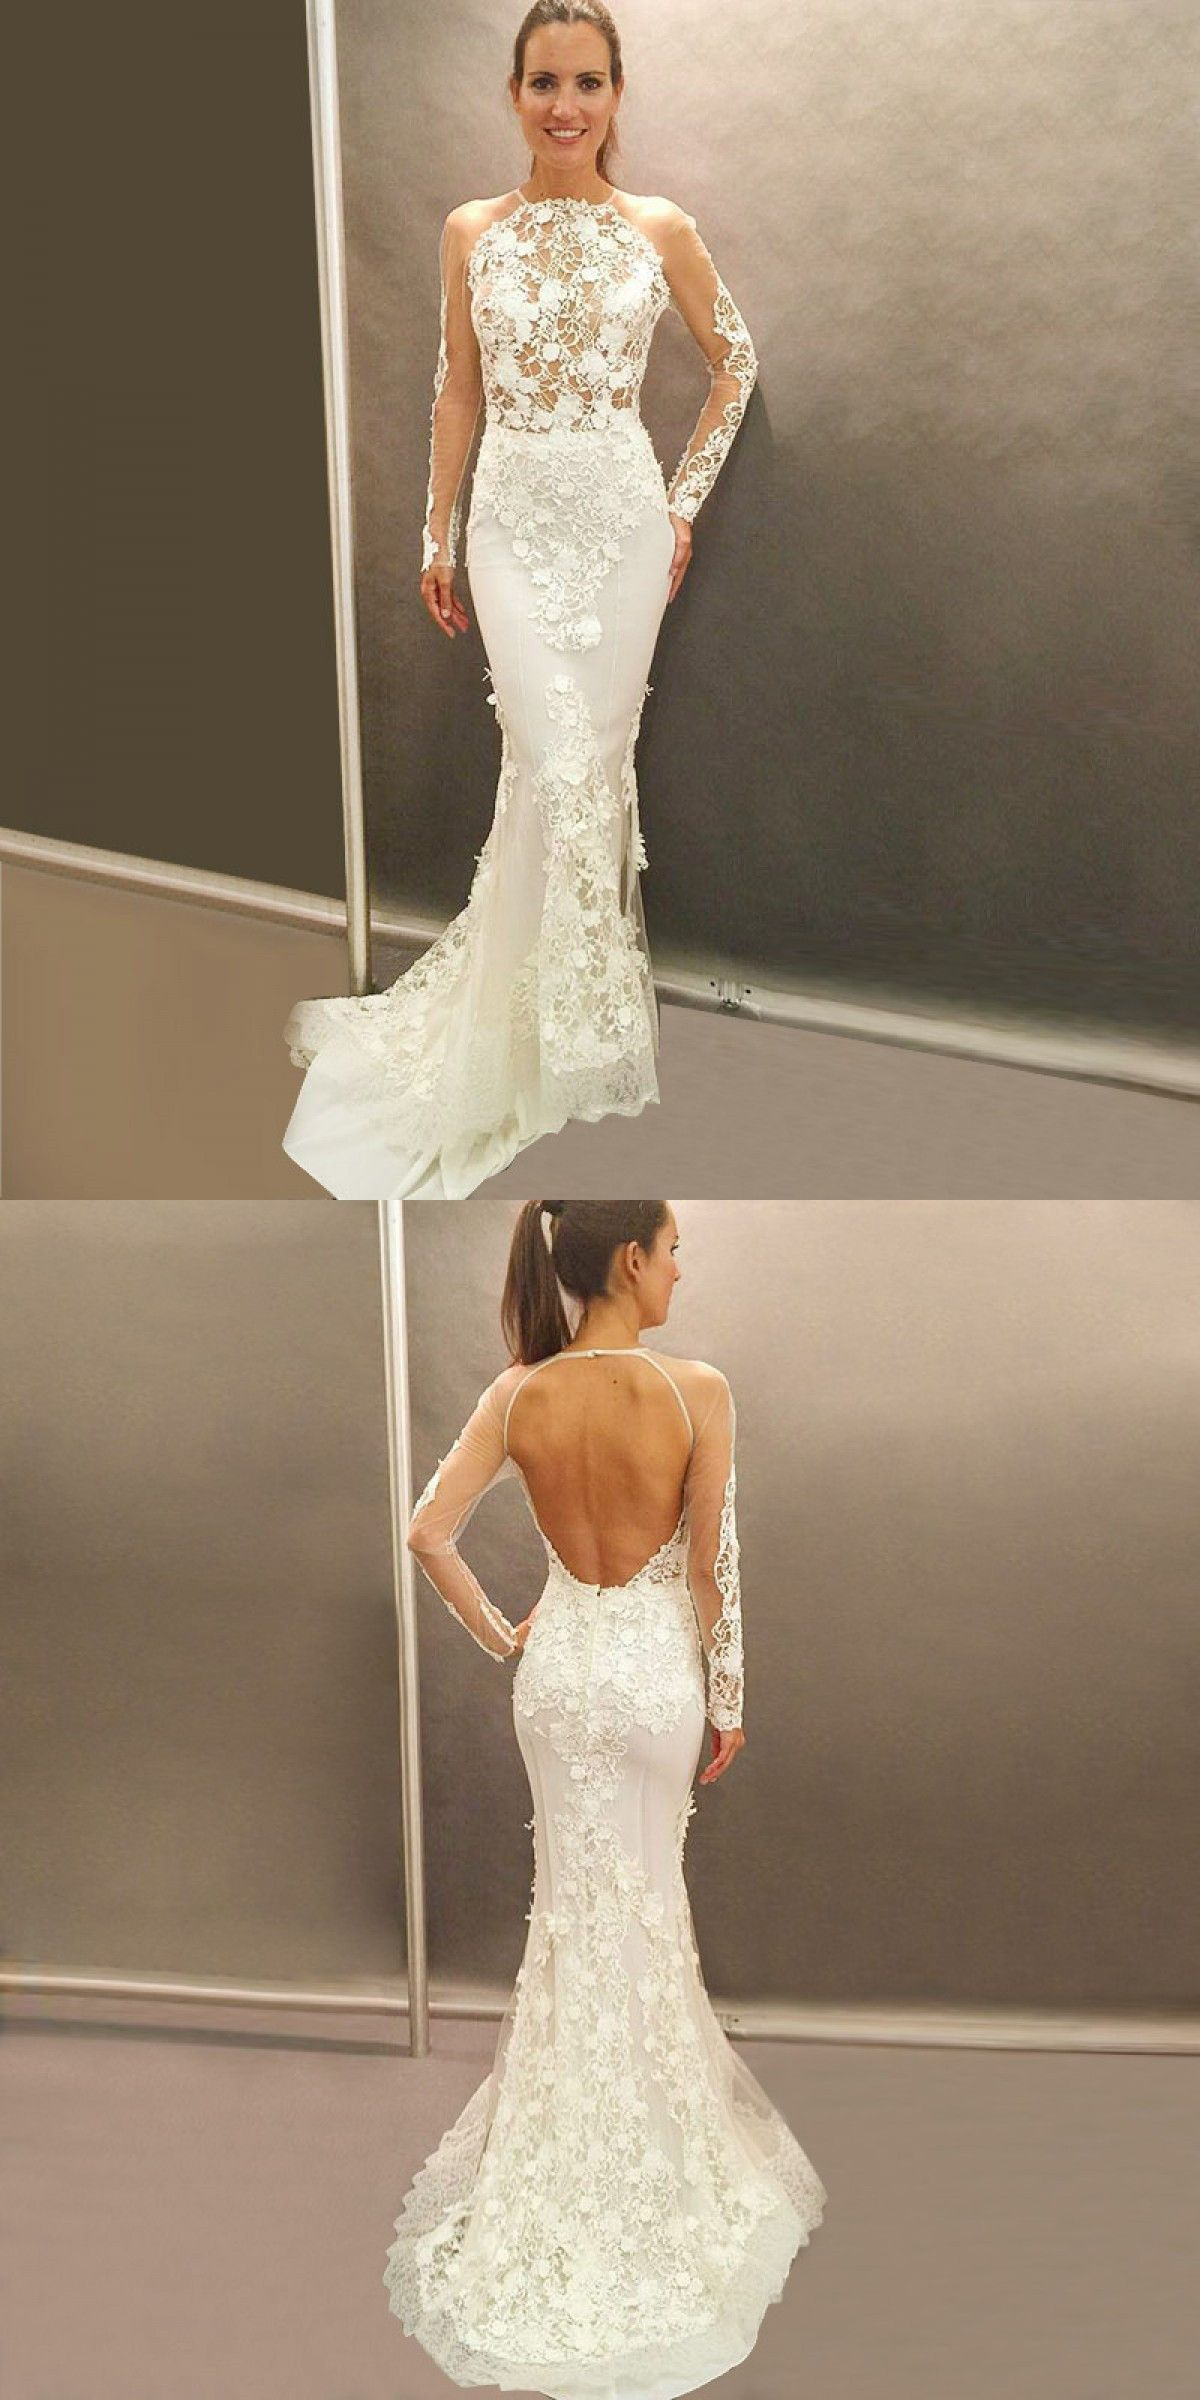 2019 Chic Round Neck Backless Long Sleeve White Lace Mermaid Wedding Dresses Mermaid Wedding Dress With Sleeves Wedding Dress Train Best Wedding Dresses [ 2400 x 1200 Pixel ]